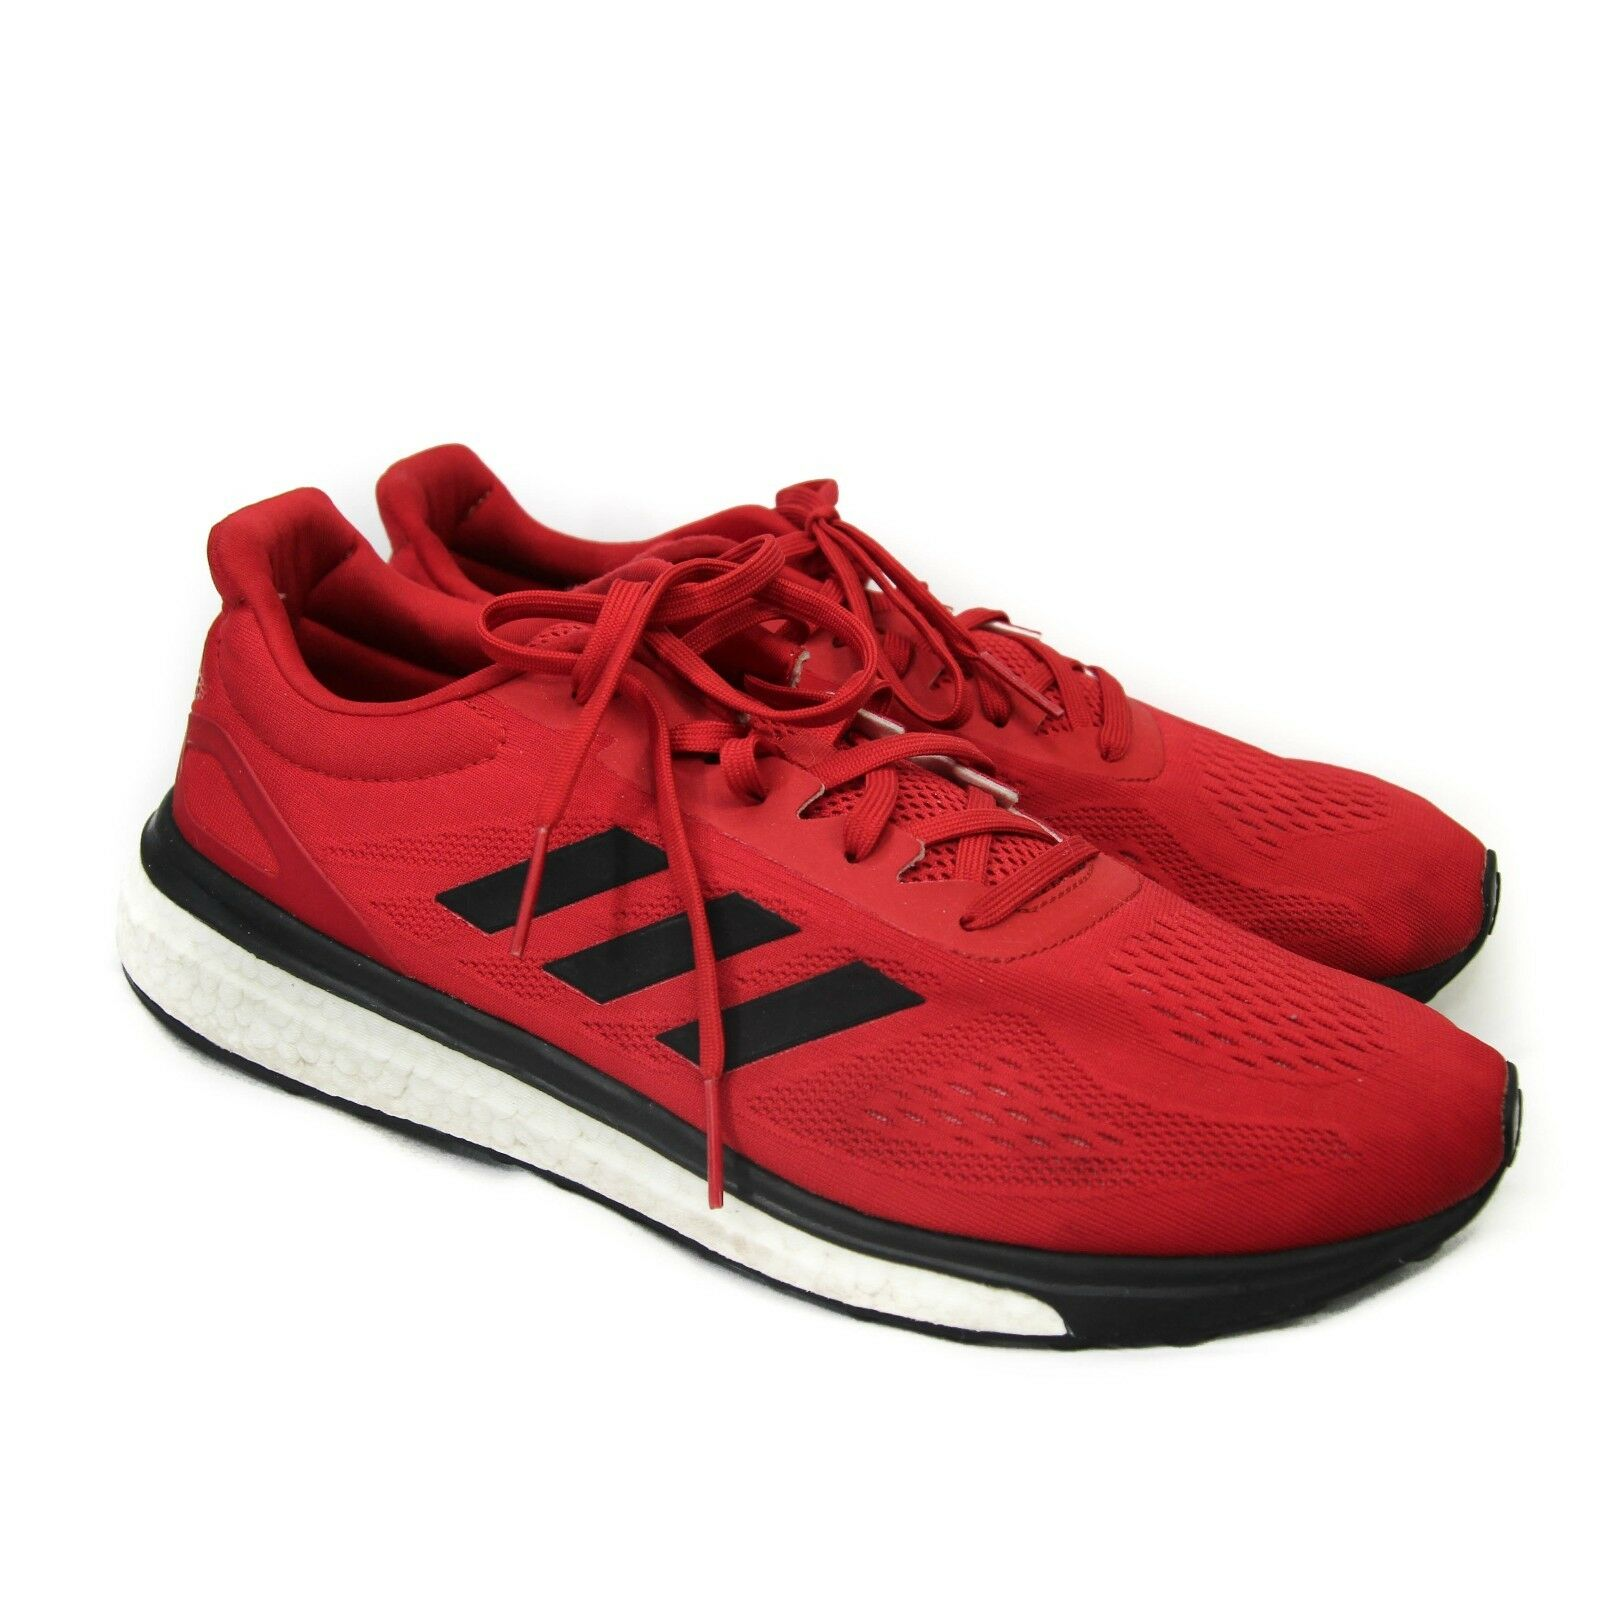 Adidas Pure Boots Athletic Sneakers Running shoes Red Mens 12